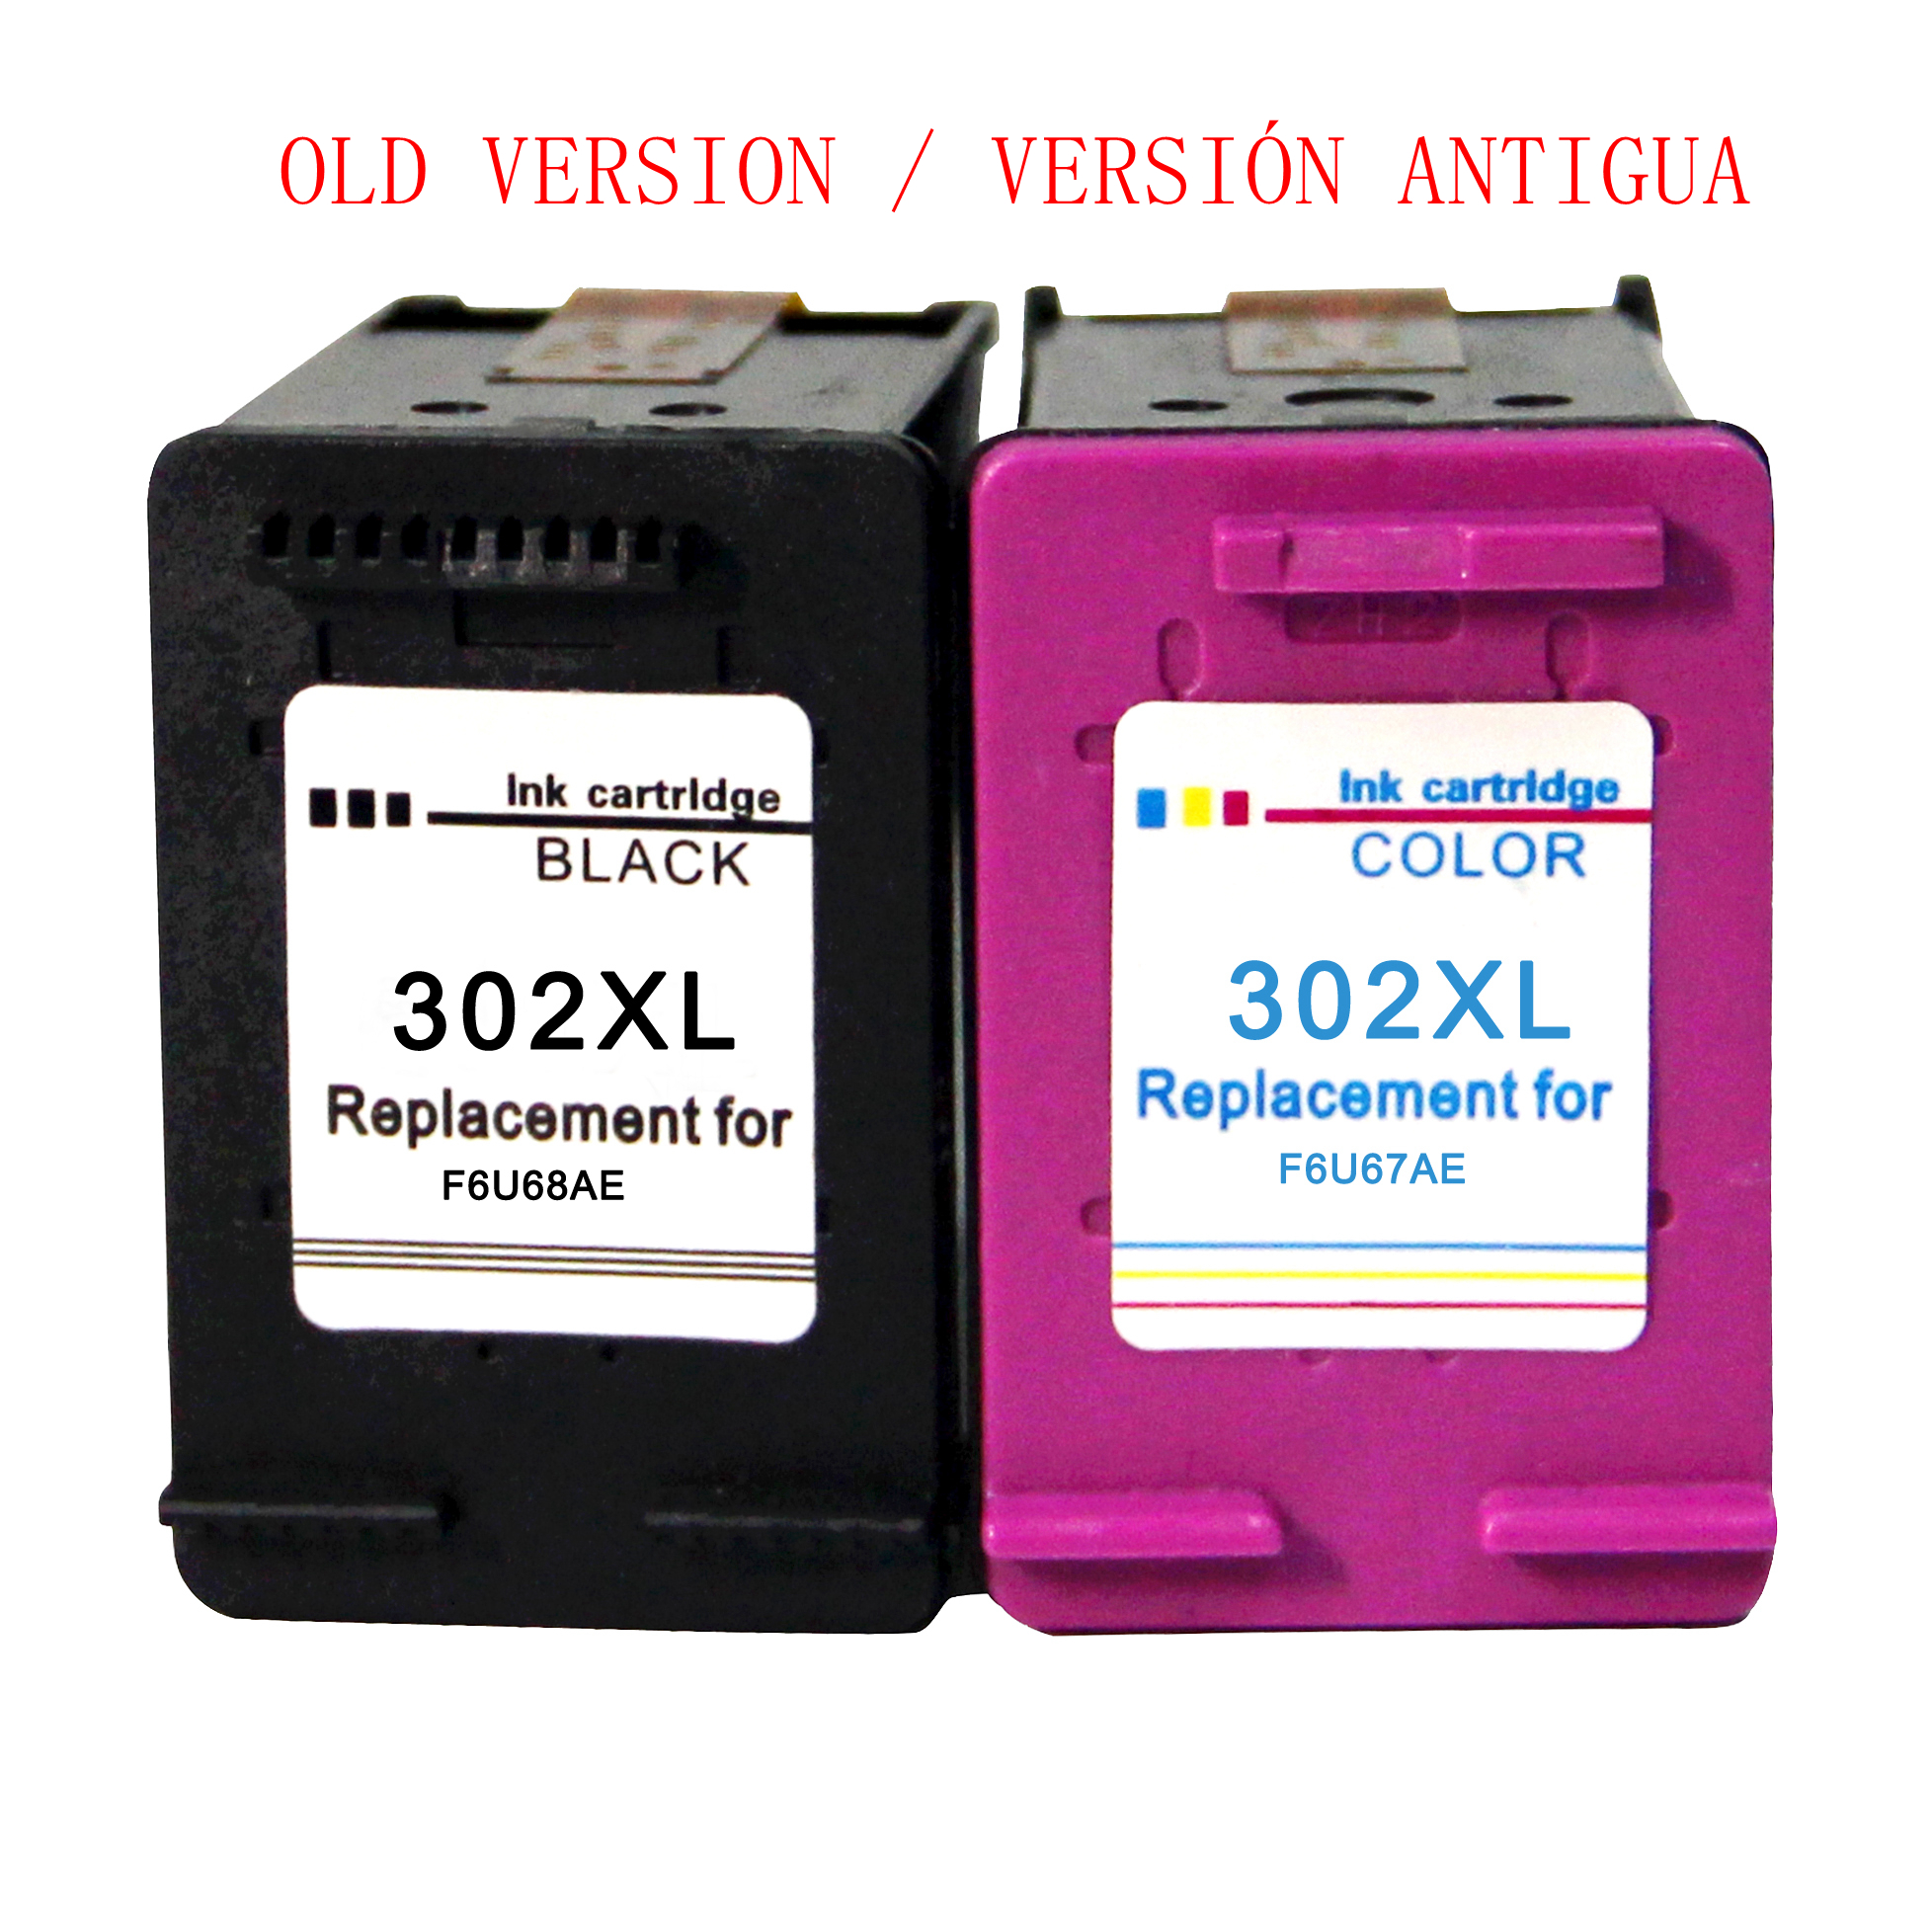 Compatible HP 302 XL Cartucho de Tinta para HP 302 XL for hp302 For HP Deskjet 2130 2135 1110 3630 3632 Officejet 3830 3834 4650